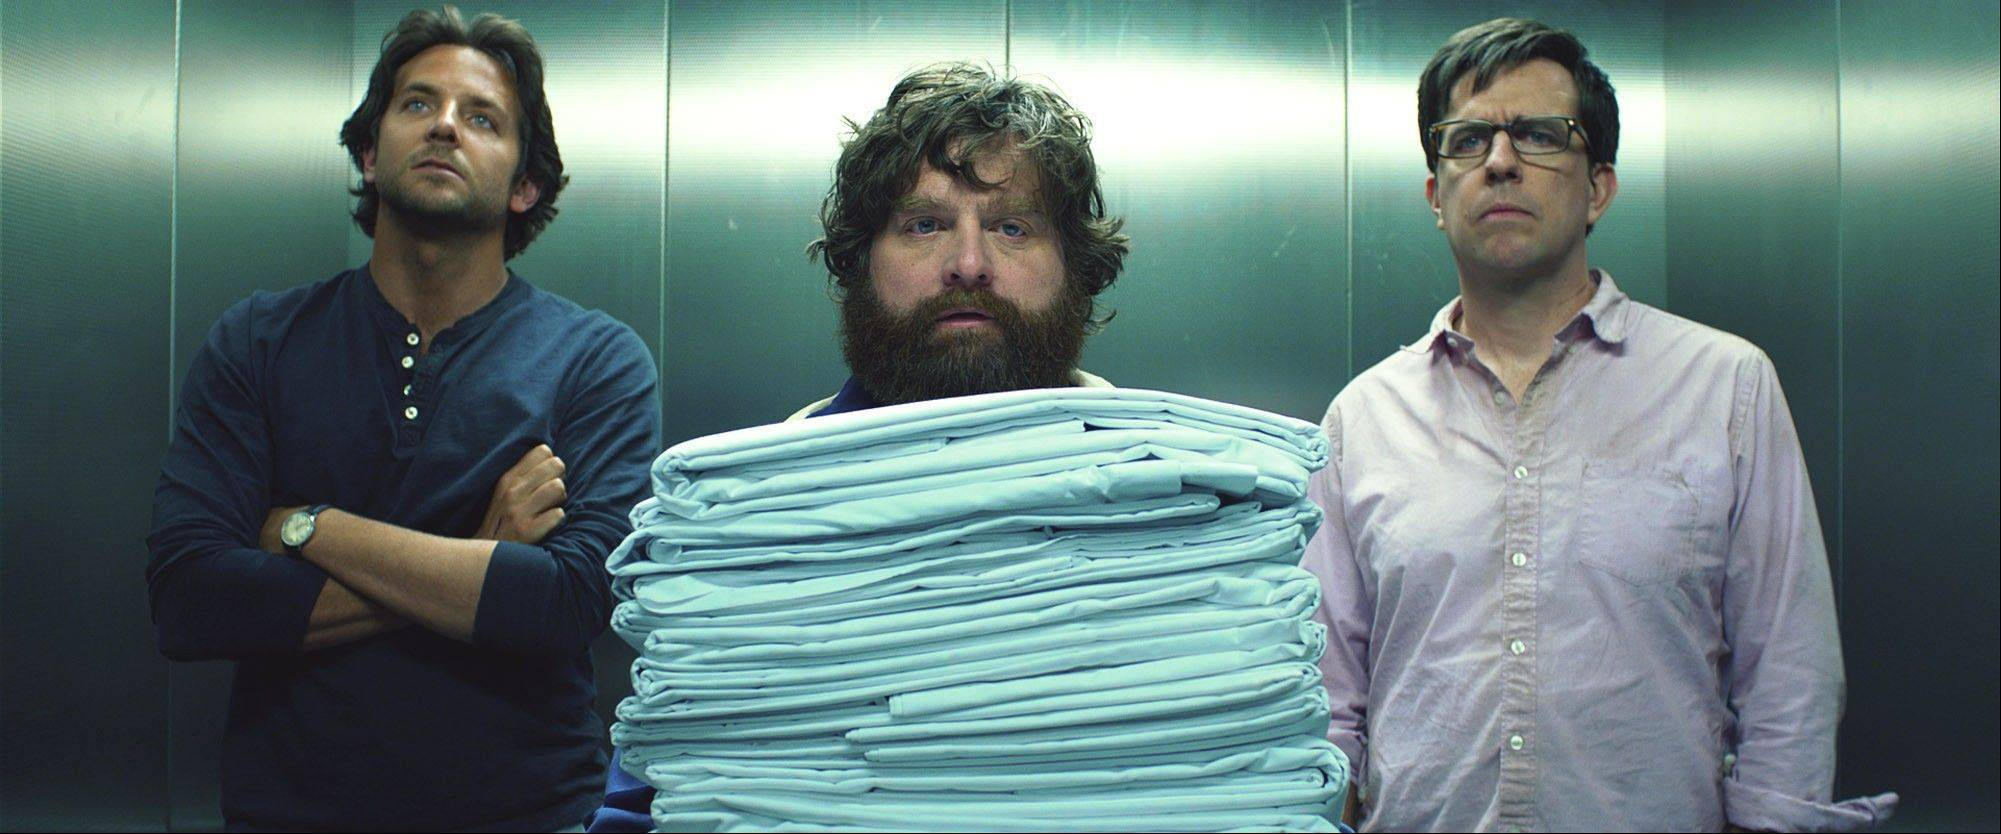 "This film publicity image released by Warner Bros. Pictures shows Bradley Cooper as Phil, left, Zach Galifianakis as Alan, center, and Ed Hlems as Stu in a scene from ""The Hangover Part III,"" which raked in $42 million at the box office."